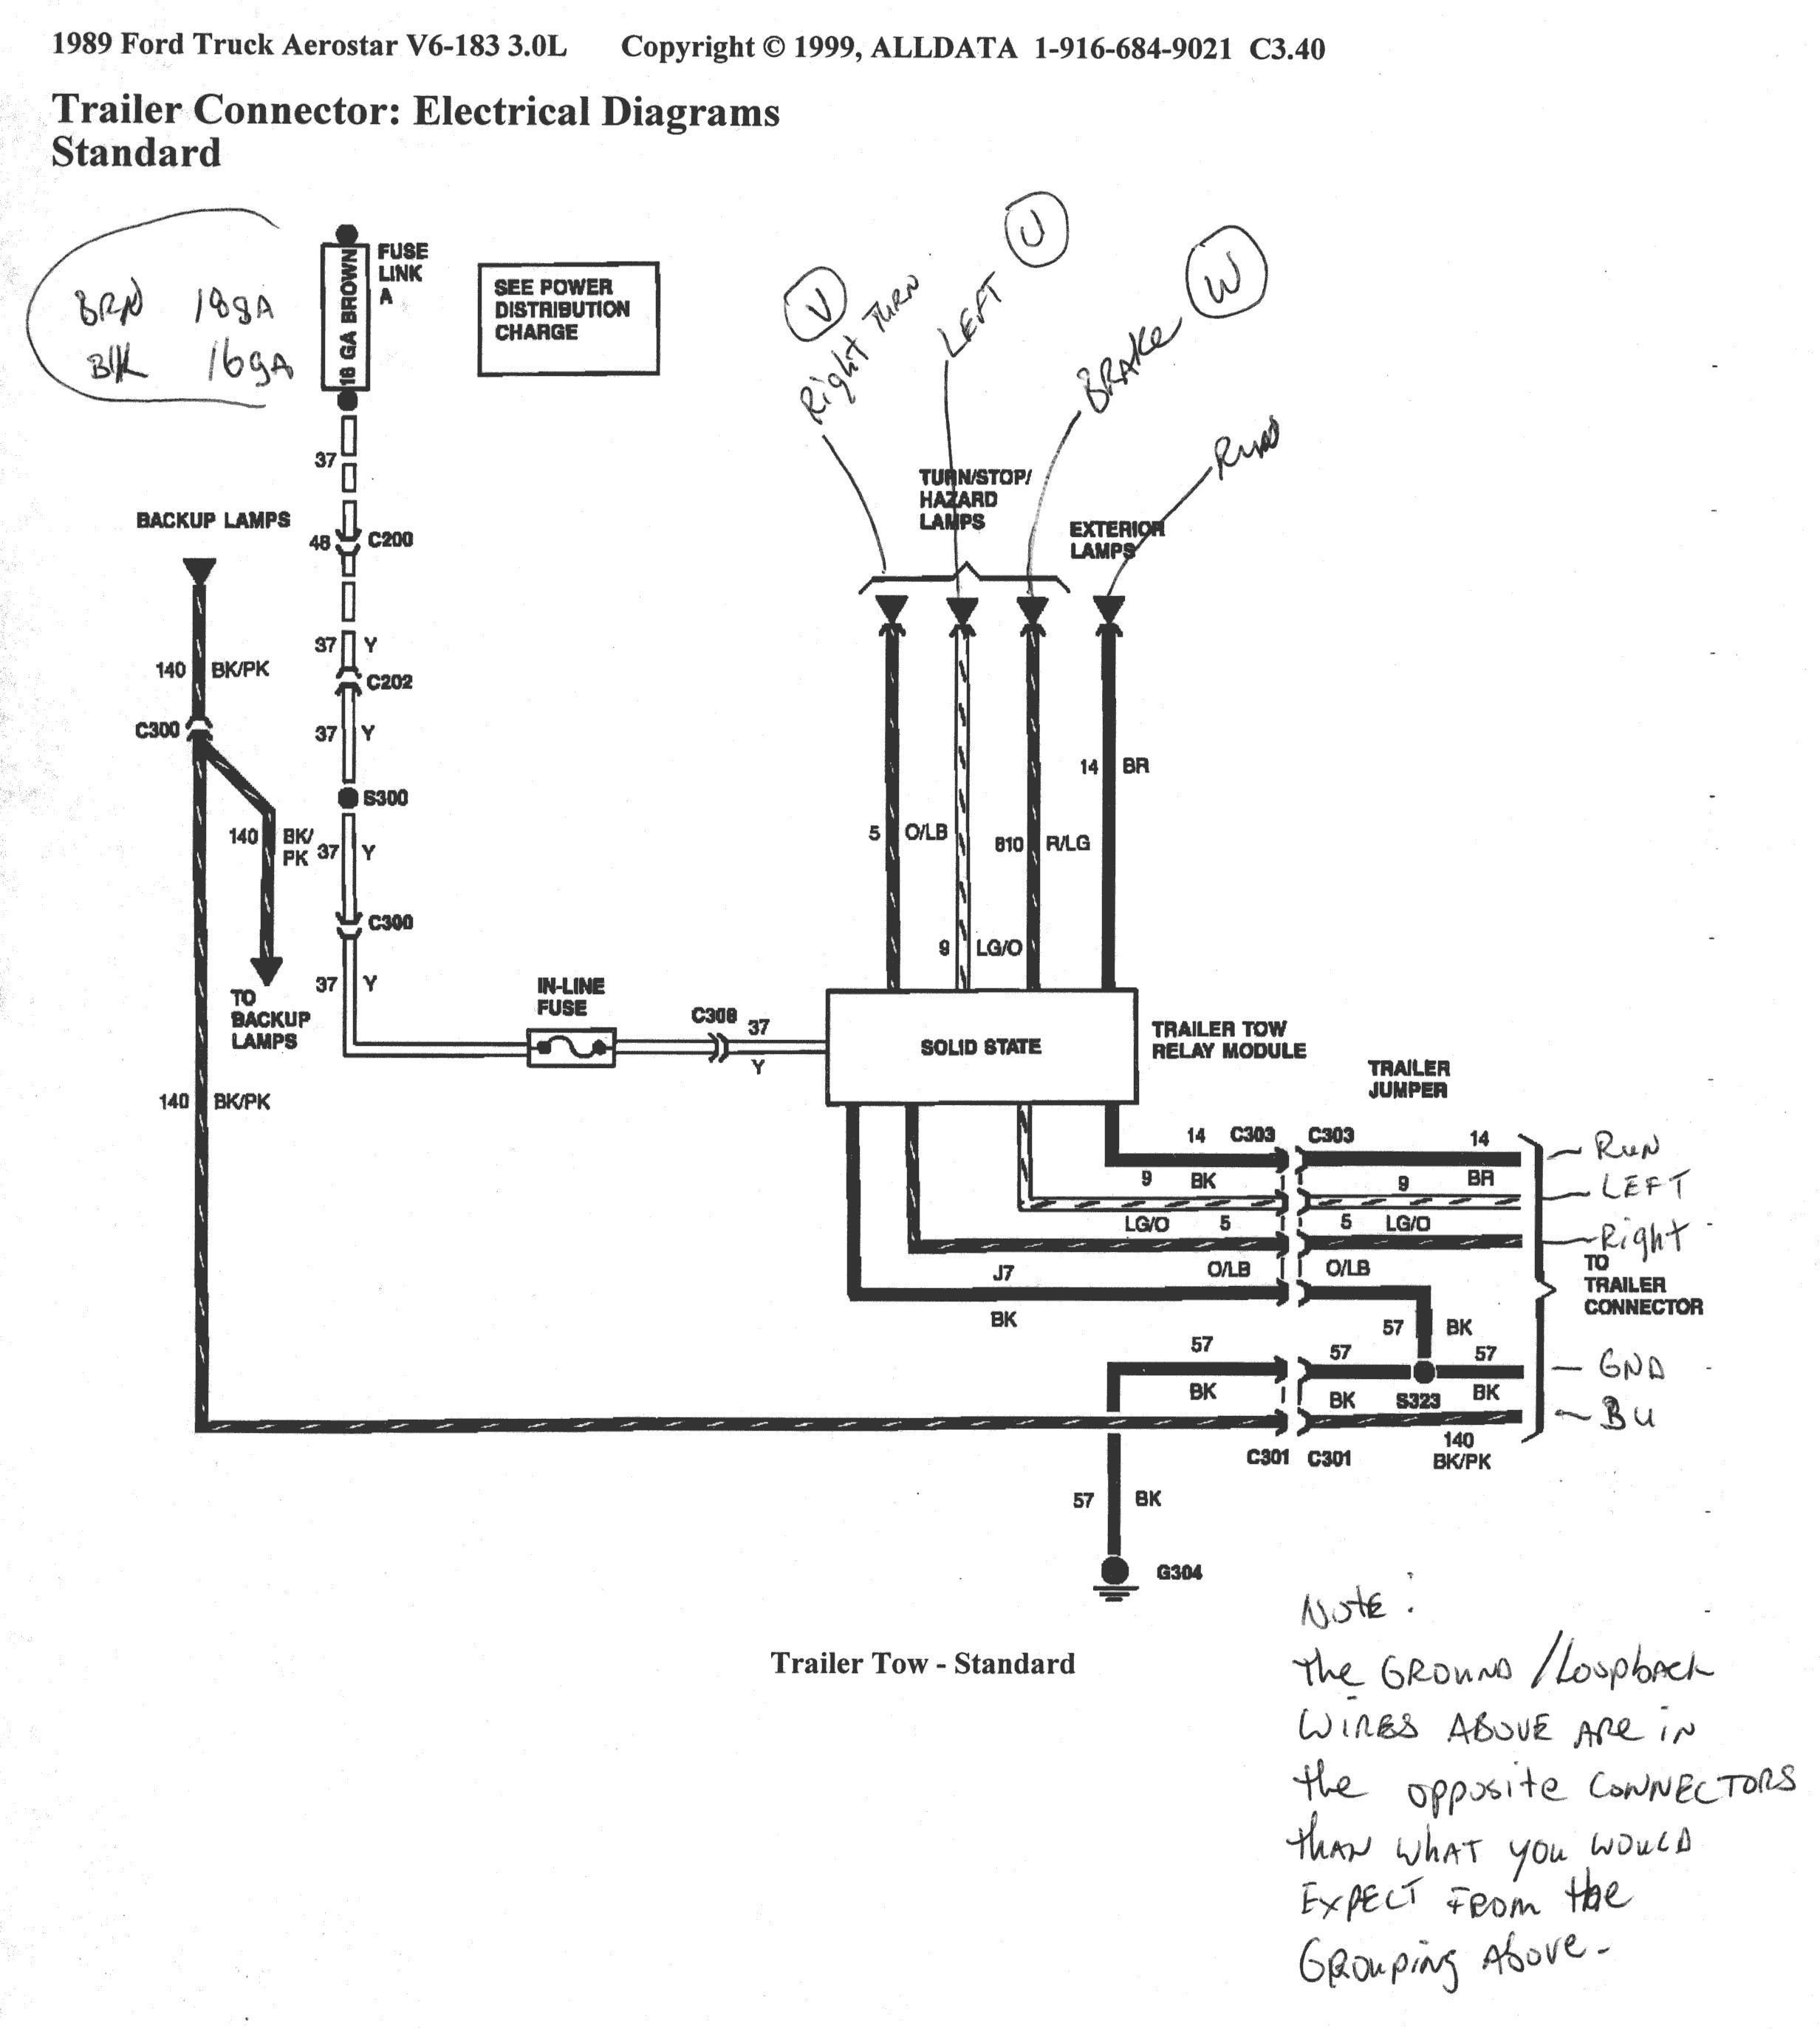 1995 ford f250 trailer wiring diagram Collection-Trailer Connector Wiring Diagram Fresh ford F150 Trailer Wiring Harness Diagram Magnificent F250 and 17-p